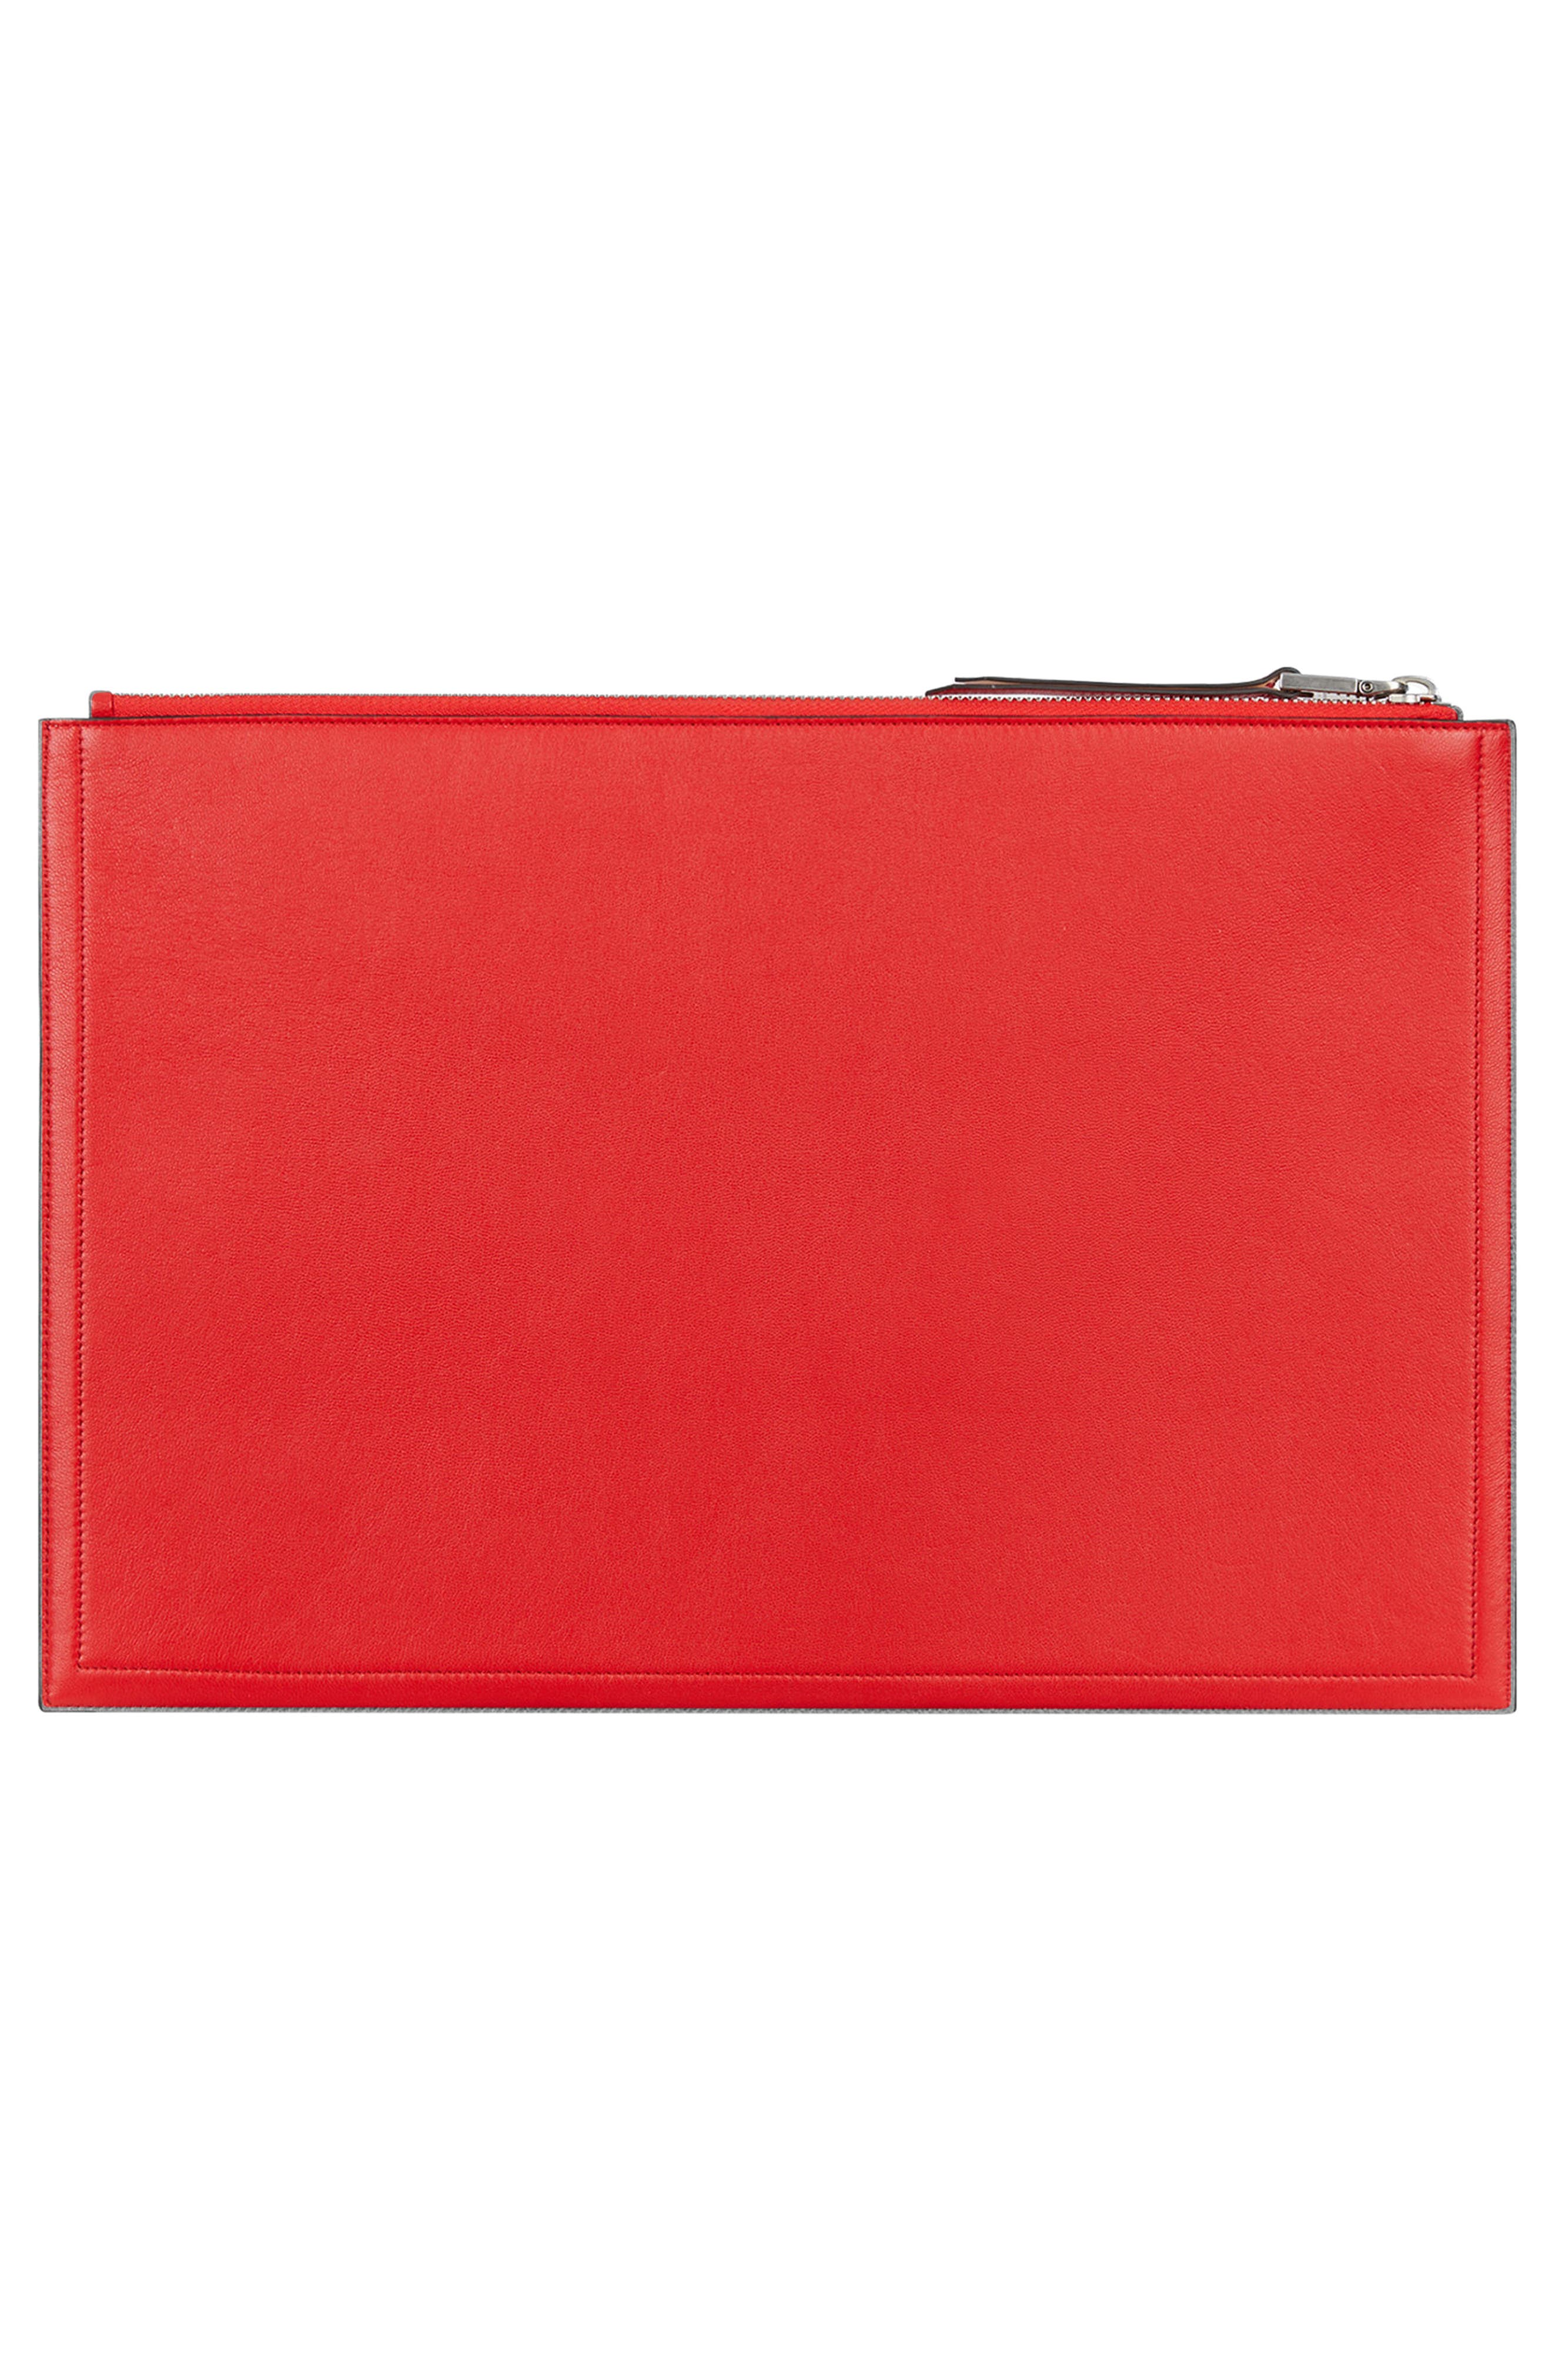 GIVENCHY,                             Embossed Logo Lambskin Leather Pouch,                             Alternate thumbnail 3, color,                             POPPY RED